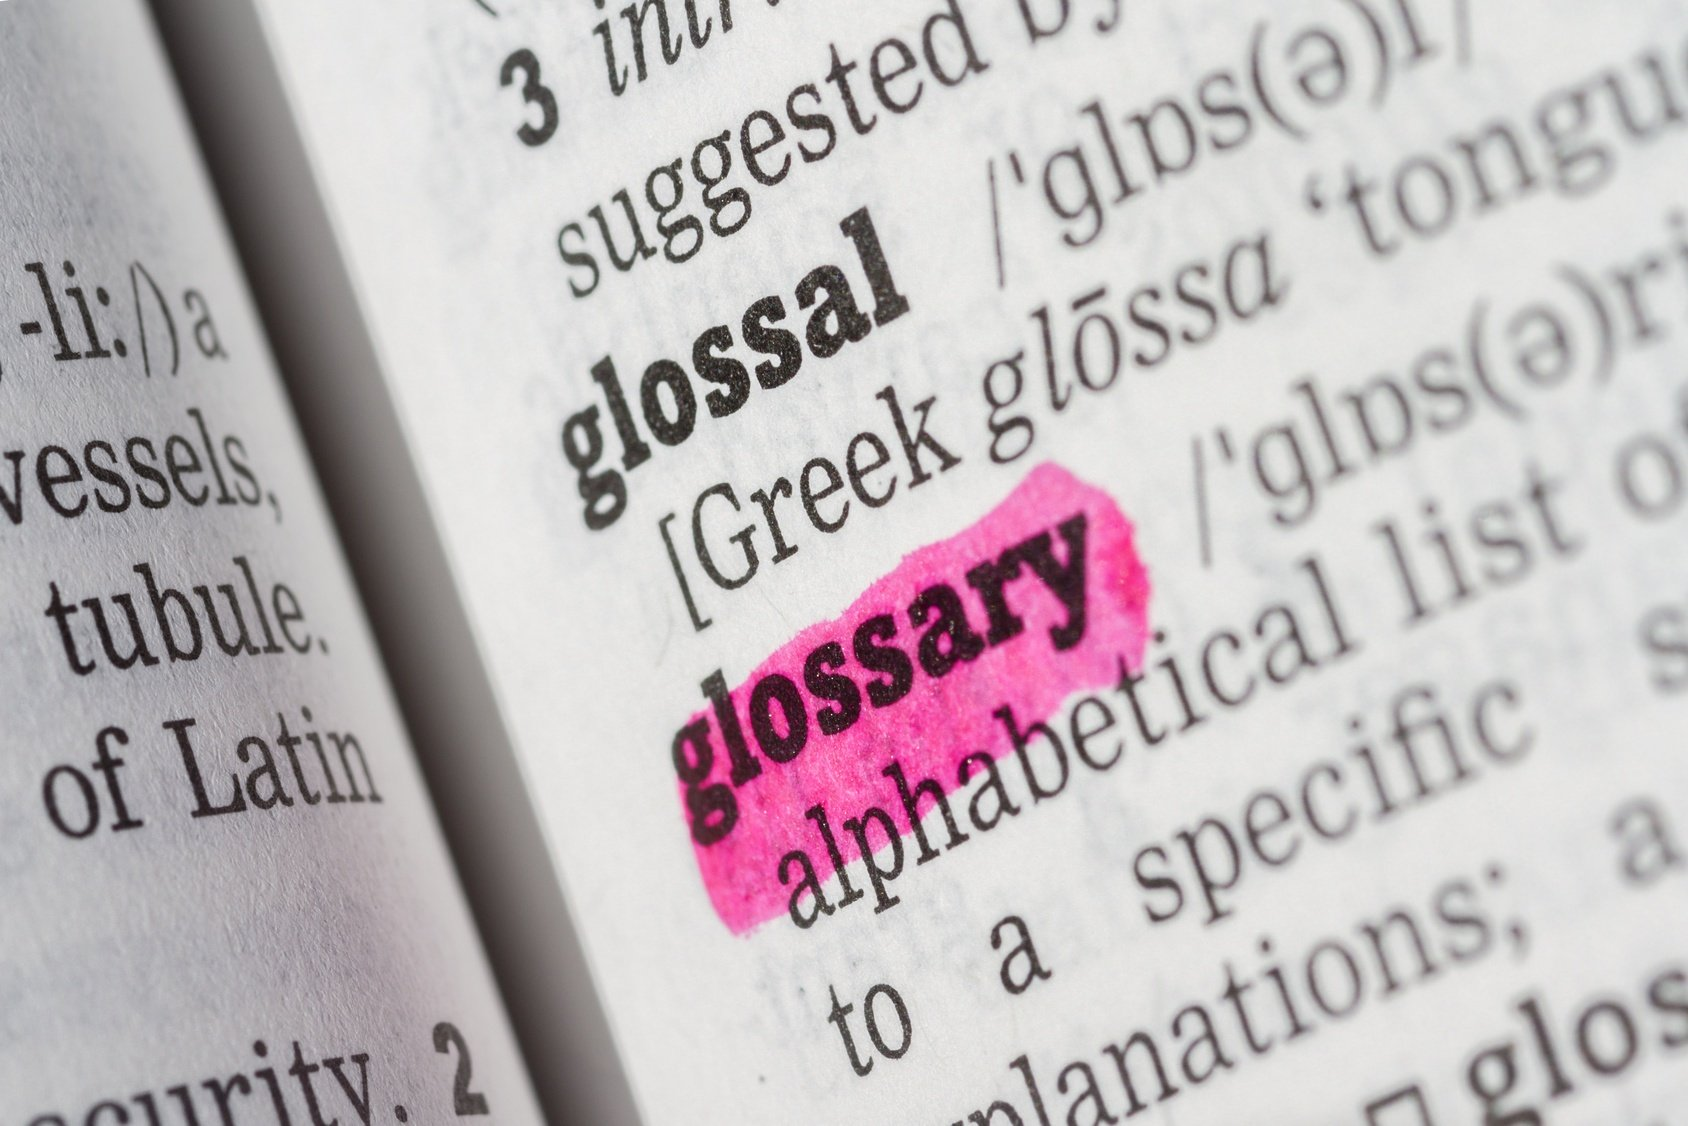 college admissions glossary of terms.jpg